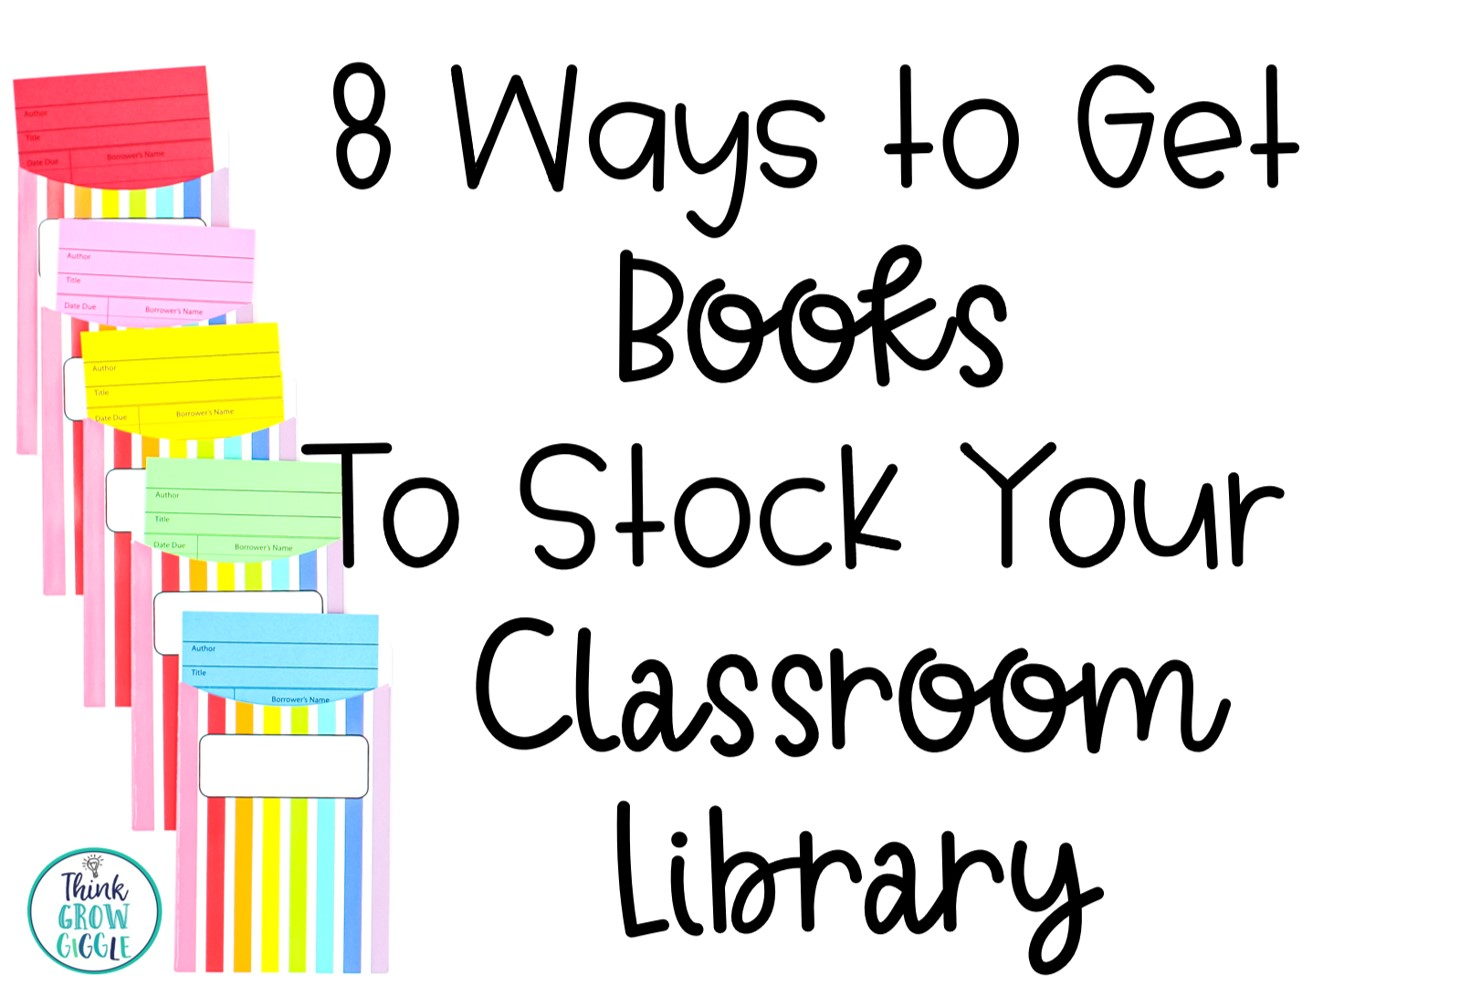 8 Ways to Get Books to Stock Your Classroom Library